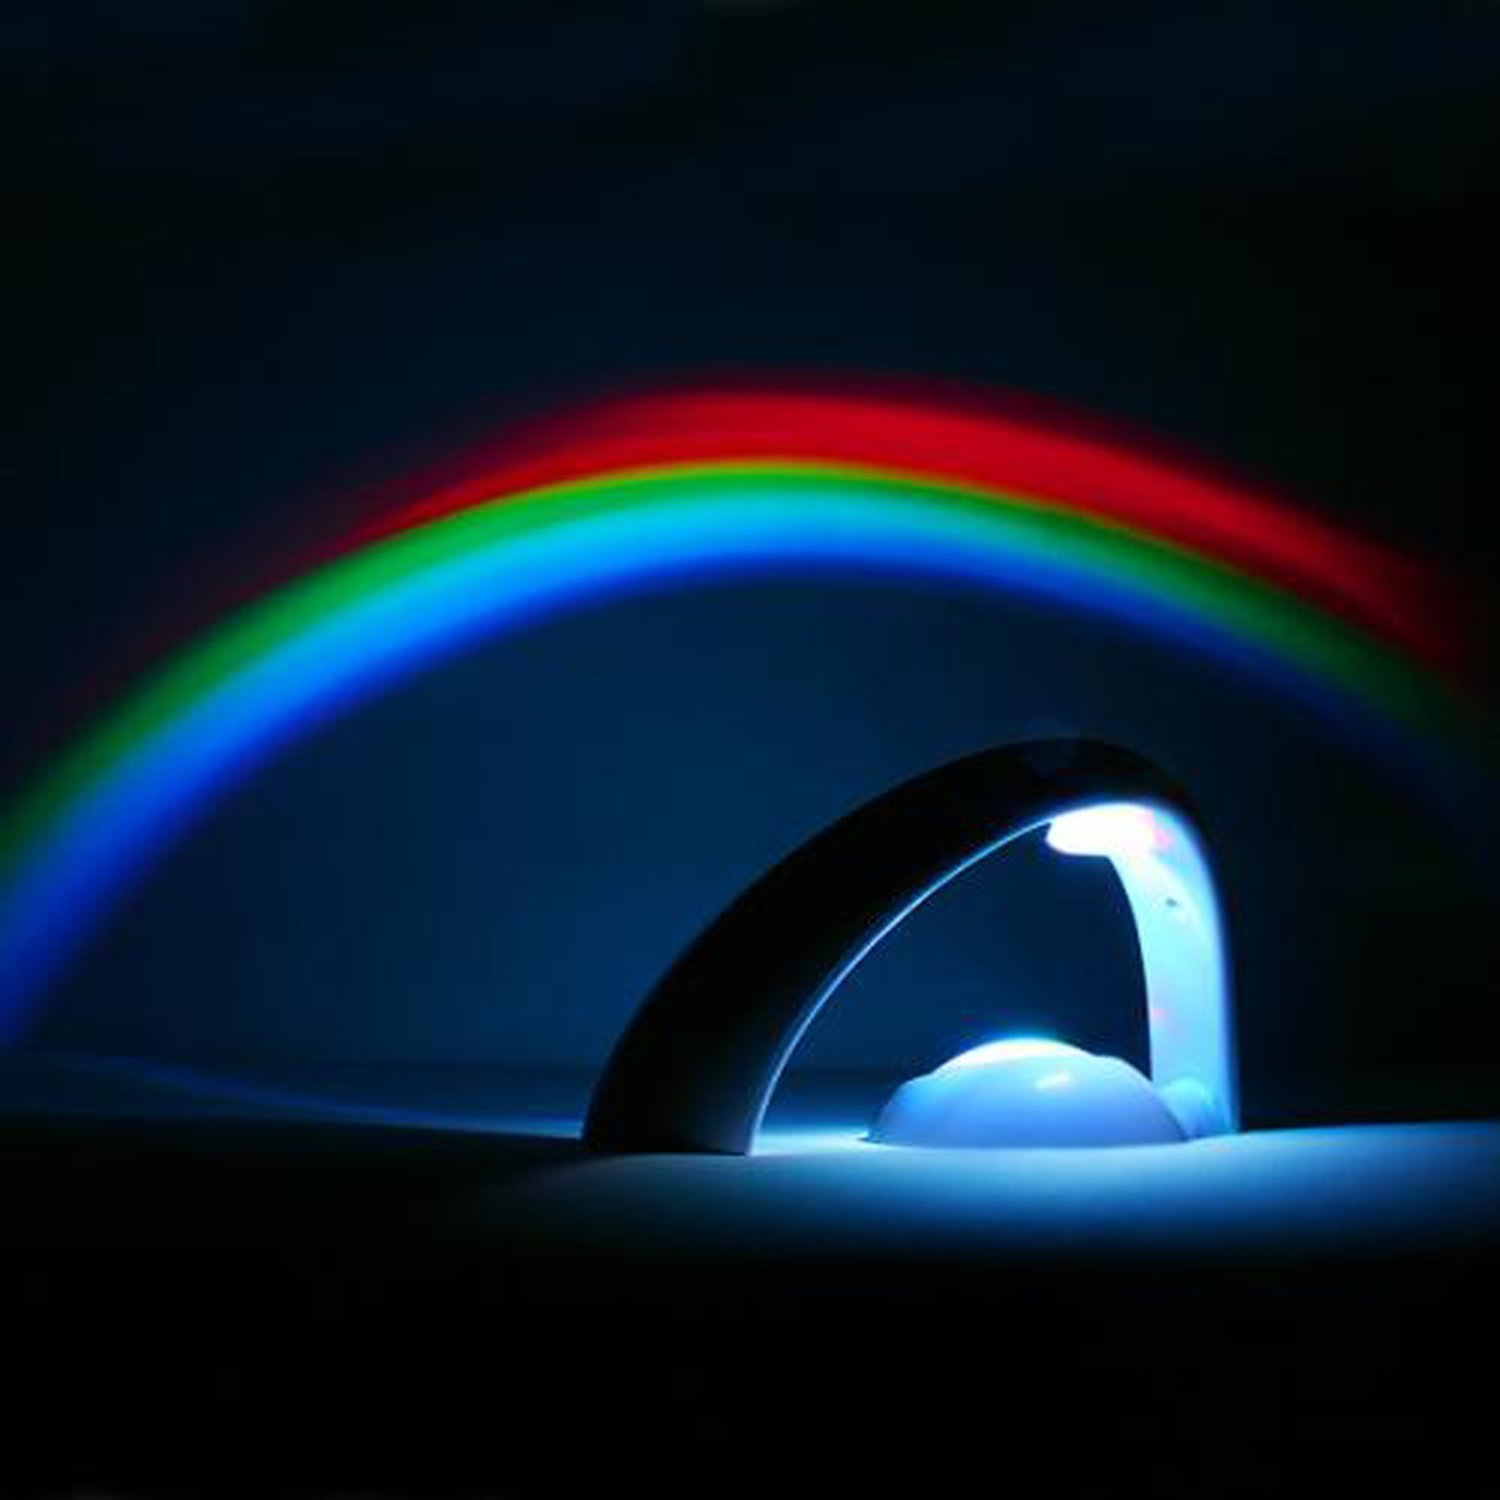 Wonderful Rainbow LED Projector Lamp Night Light Room Decoration   Sky Projector    Amazon.com